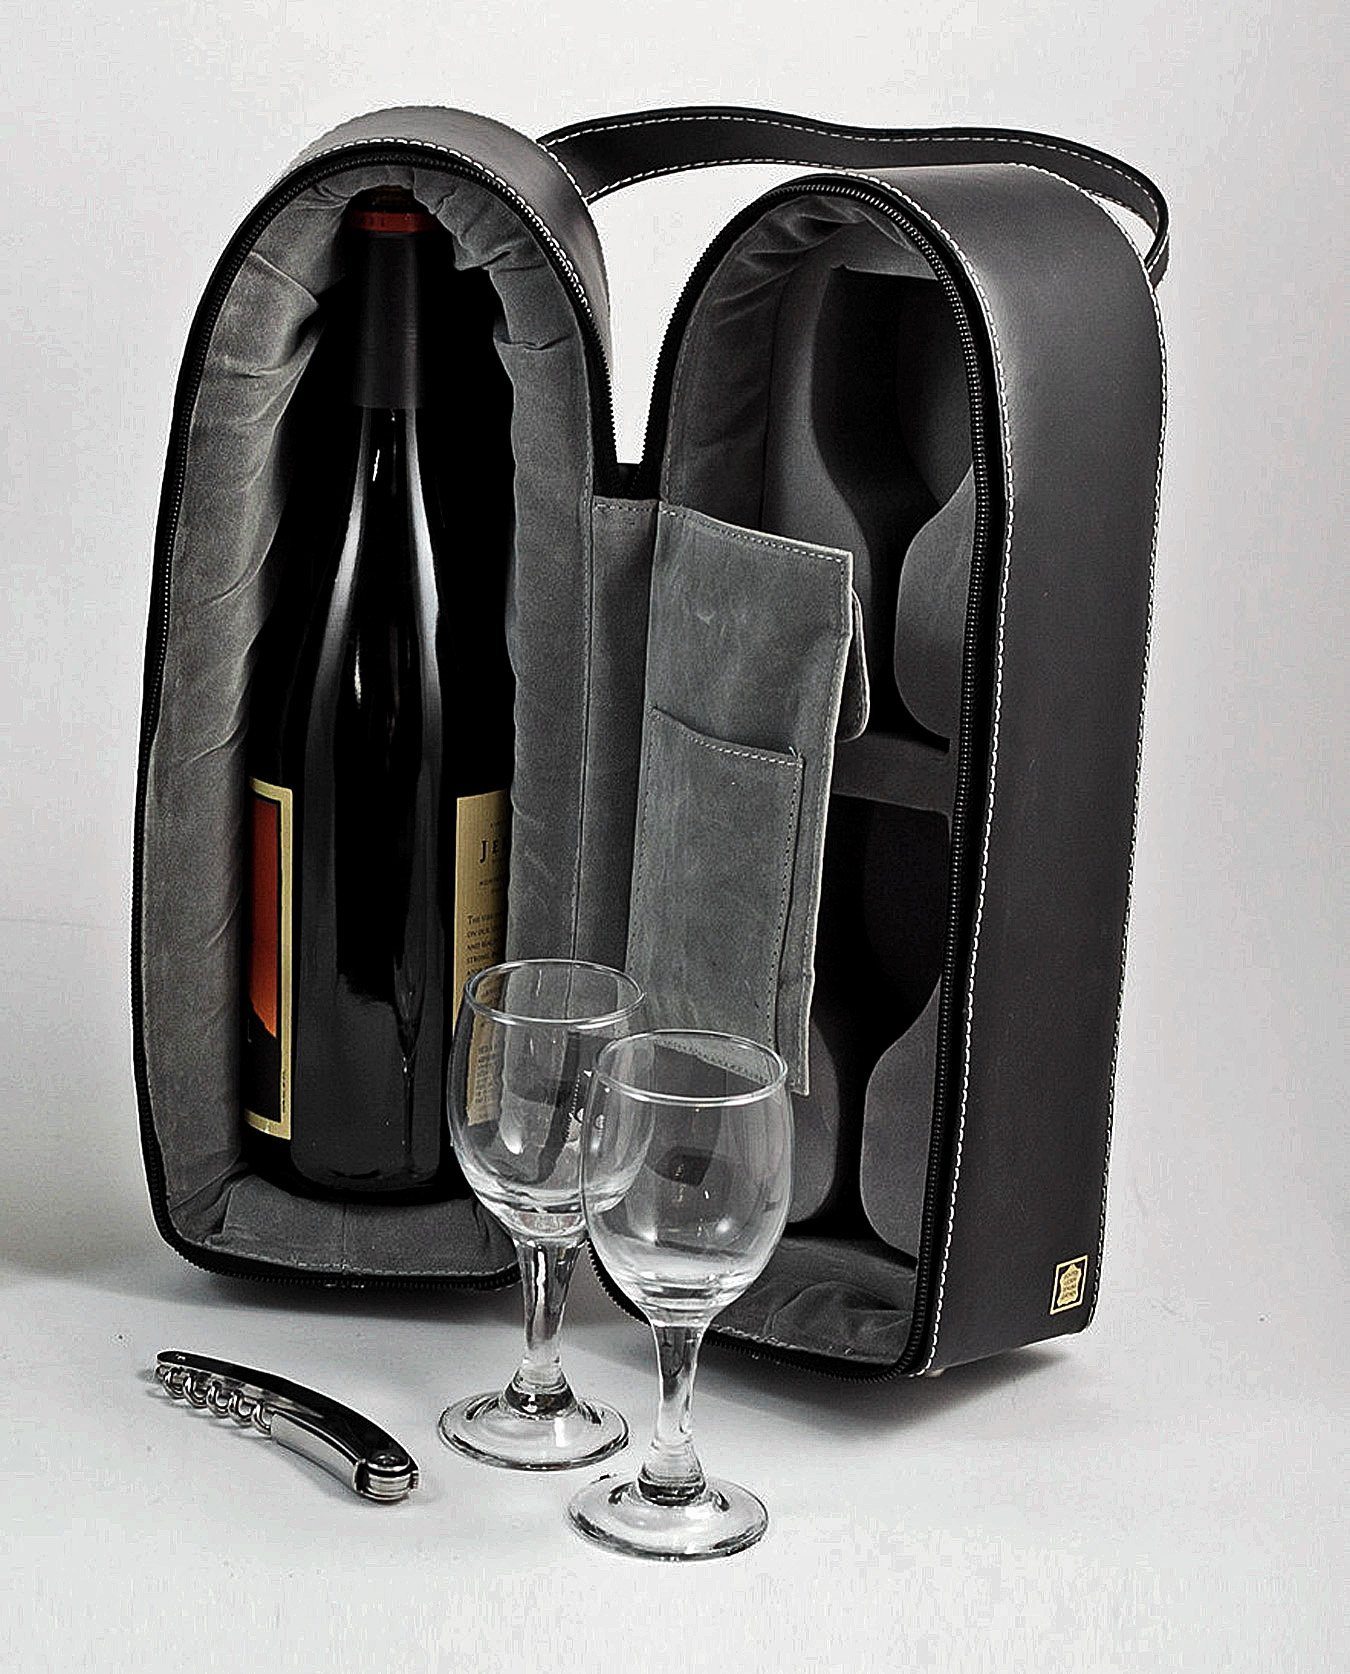 Wine Accessory Sets - Wine Caddy with Two Glasses & Bar Tool - Black Leather Case - Wine Holder